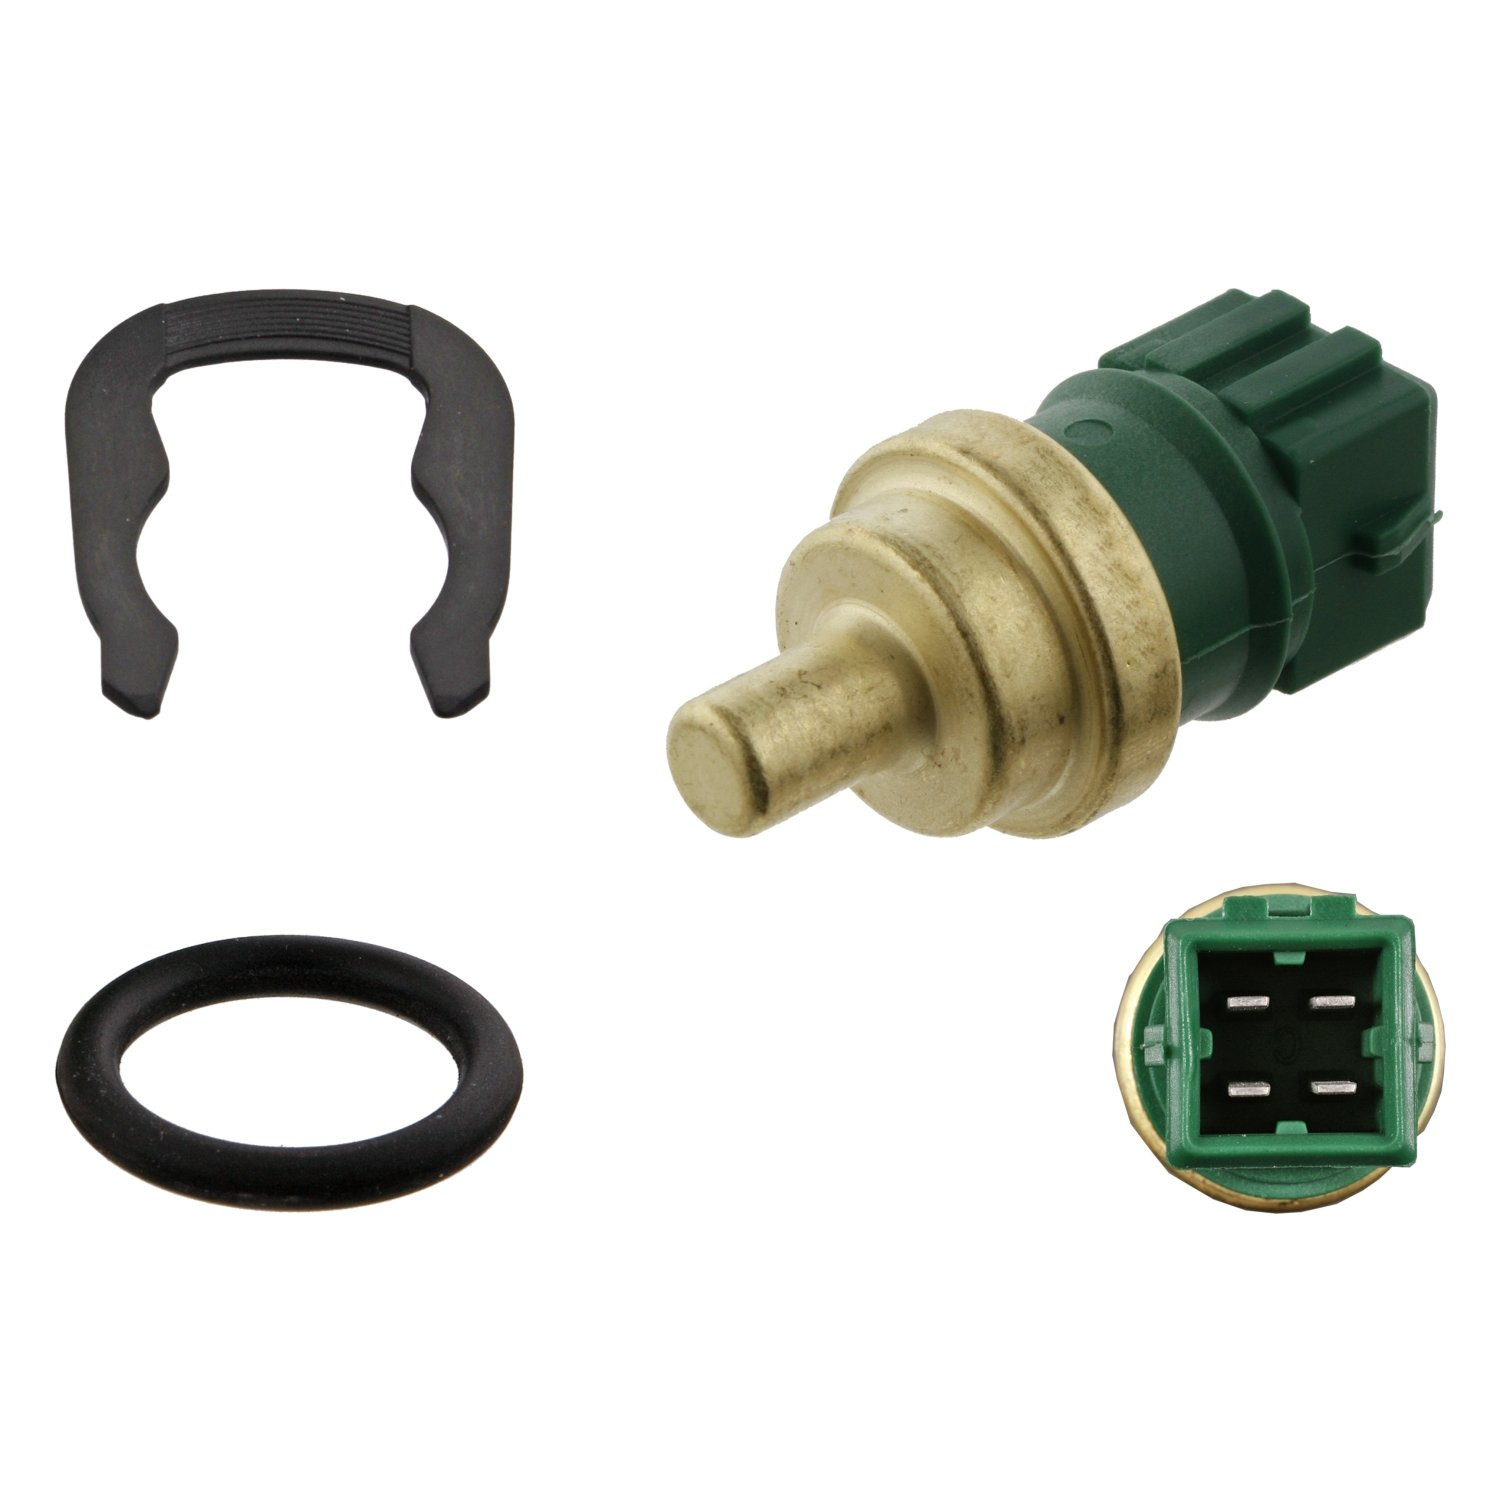 febi bilstein 31539 thermo sensor with seal ring - Pack of 1